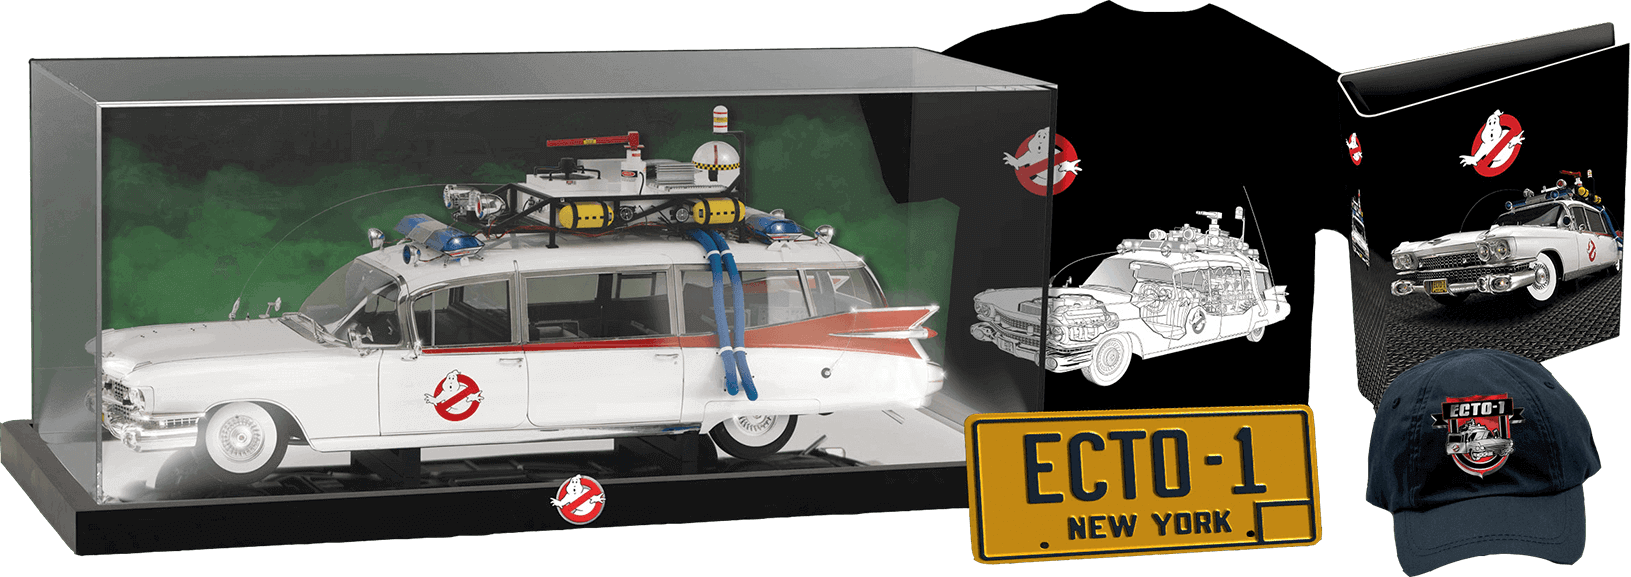 Glass case for the Ghostbusters Ecto-1 model, Ghostbusters t-shirt, binder, Ecto-1 licence plate, baseball cap with Ecto-1 motif